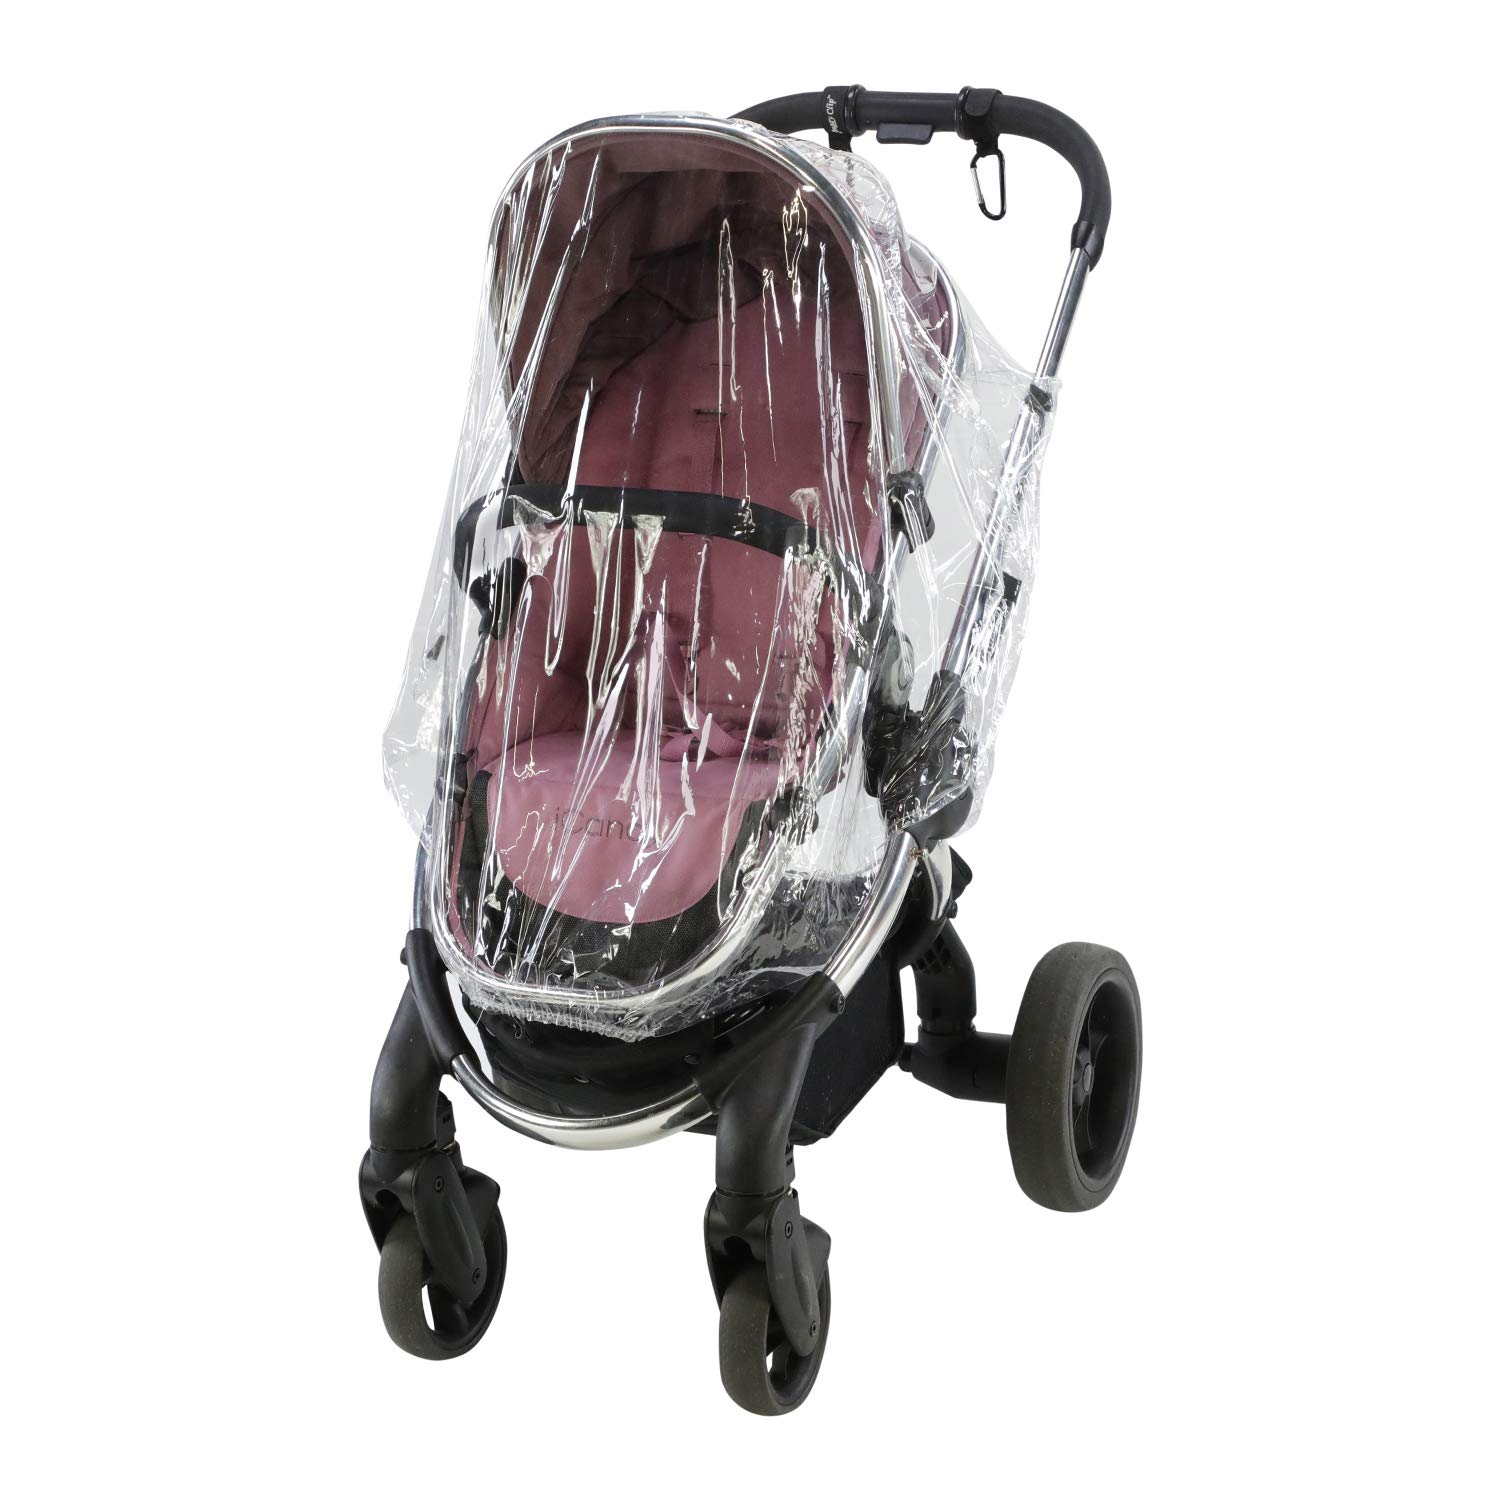 FYLO Pushchair Raincover Compatible with Recaro Easylife